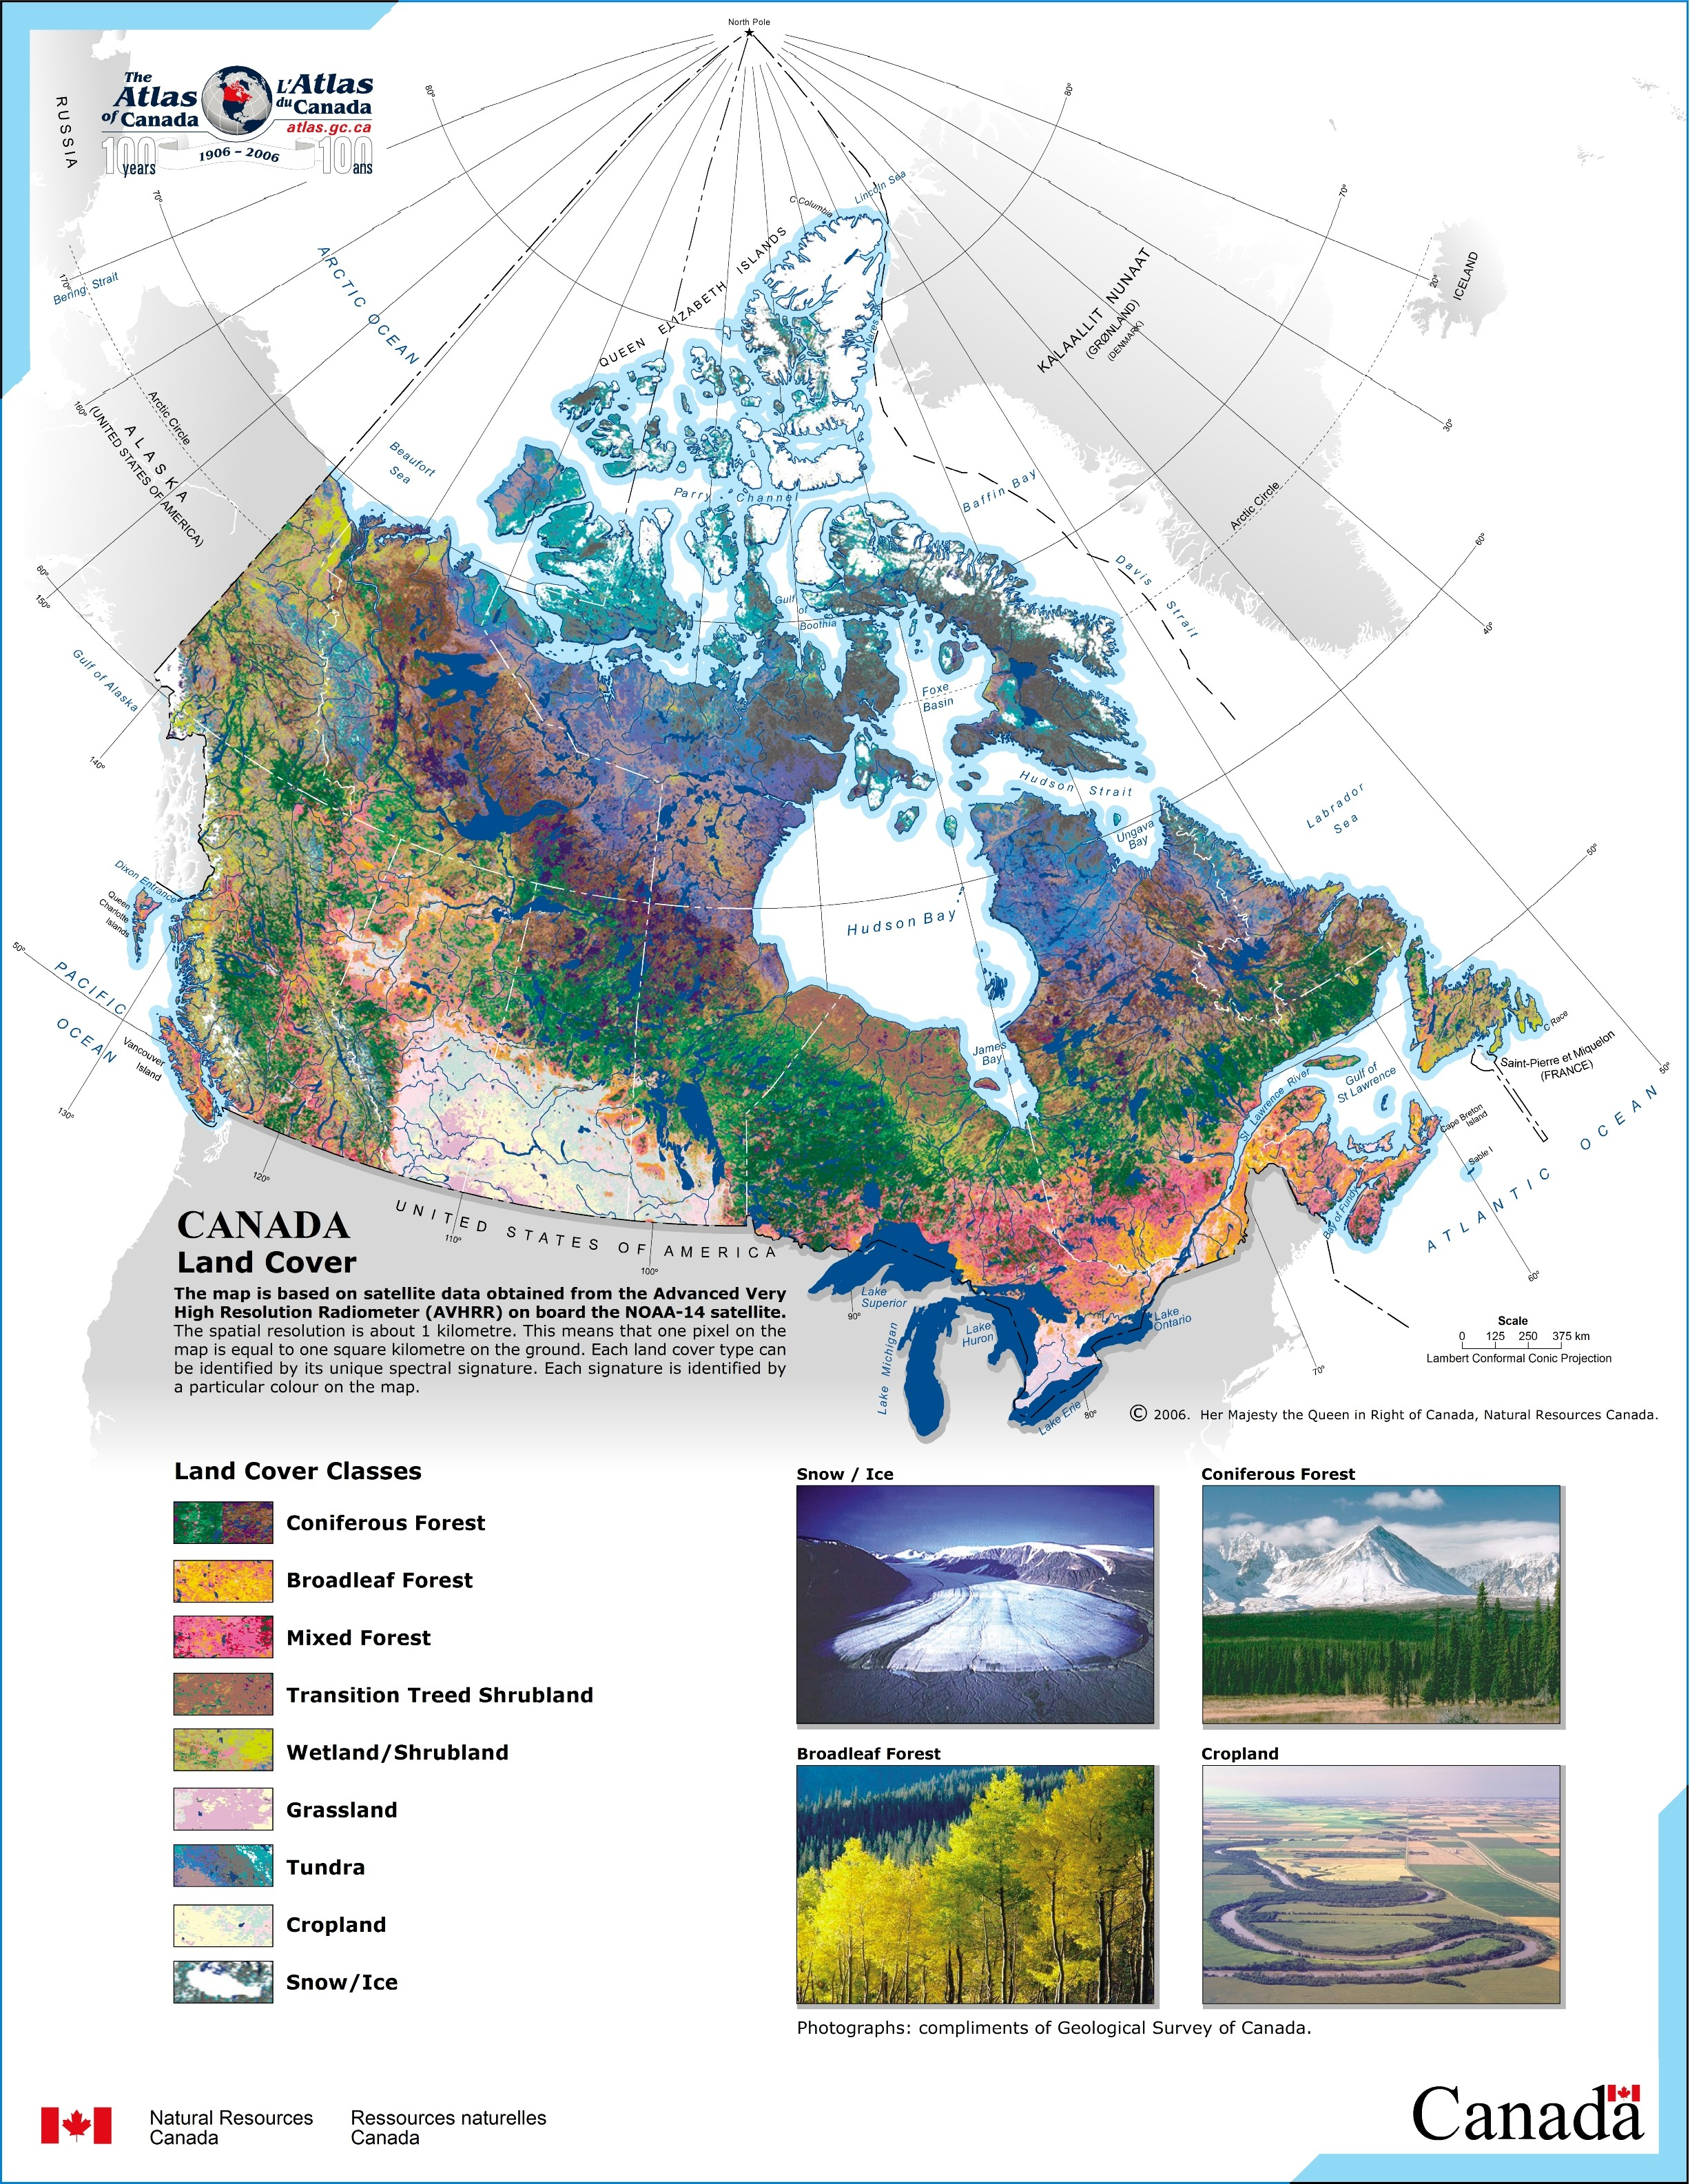 Printable Map of Canada Land Cover